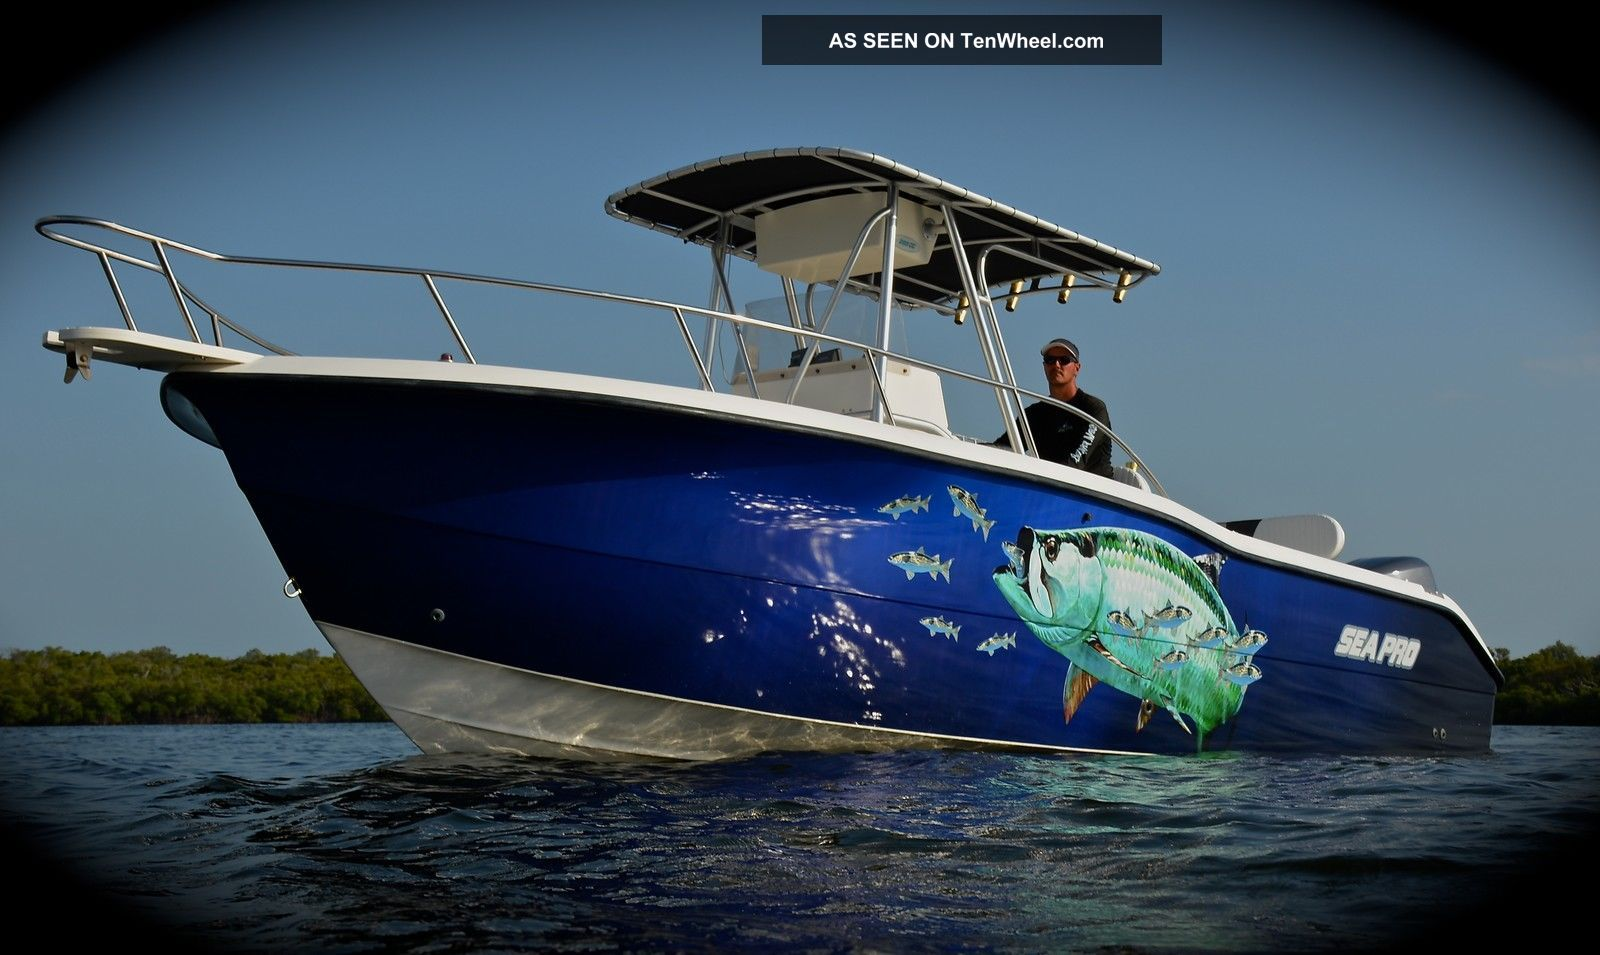 2000 Sea Pro 255 Cc Offshore Saltwater Fishing photo